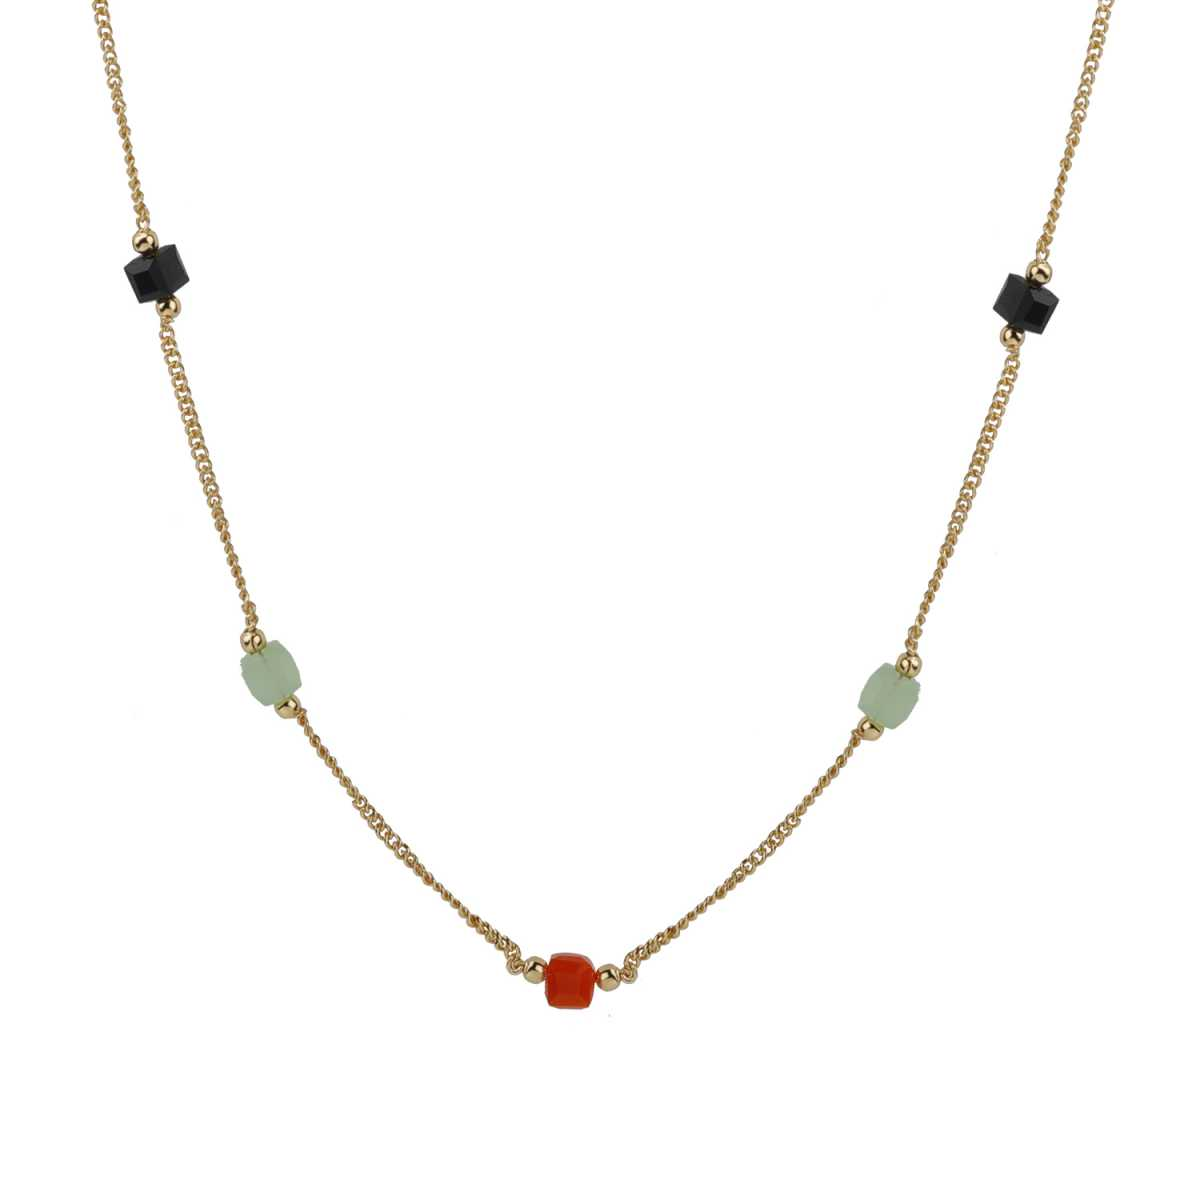 Ethnic Gold 18 Inch Chain With Multi-Color Beads Pretty Look For Girls And Women Jewellery